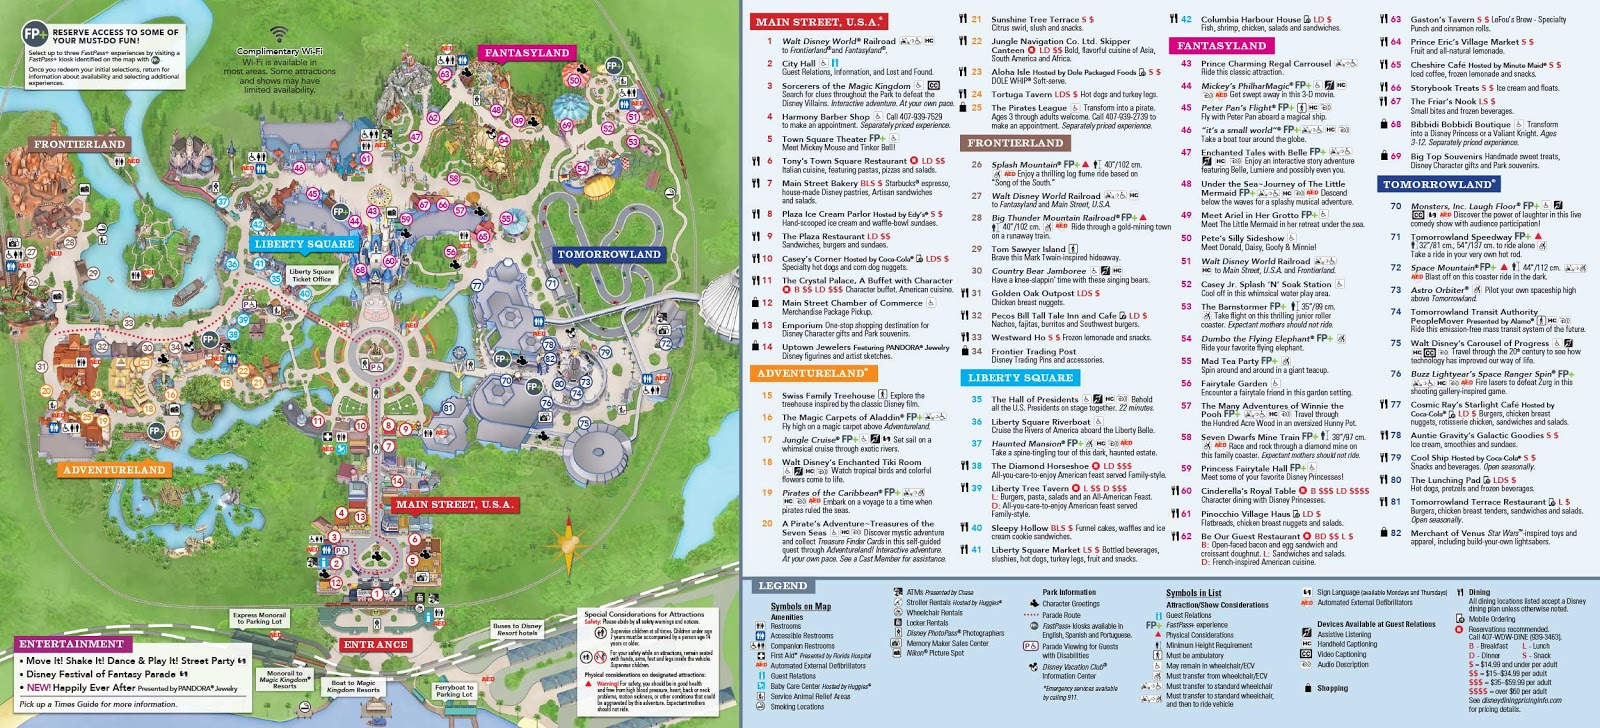 Mapa atual do Magic Kingdom